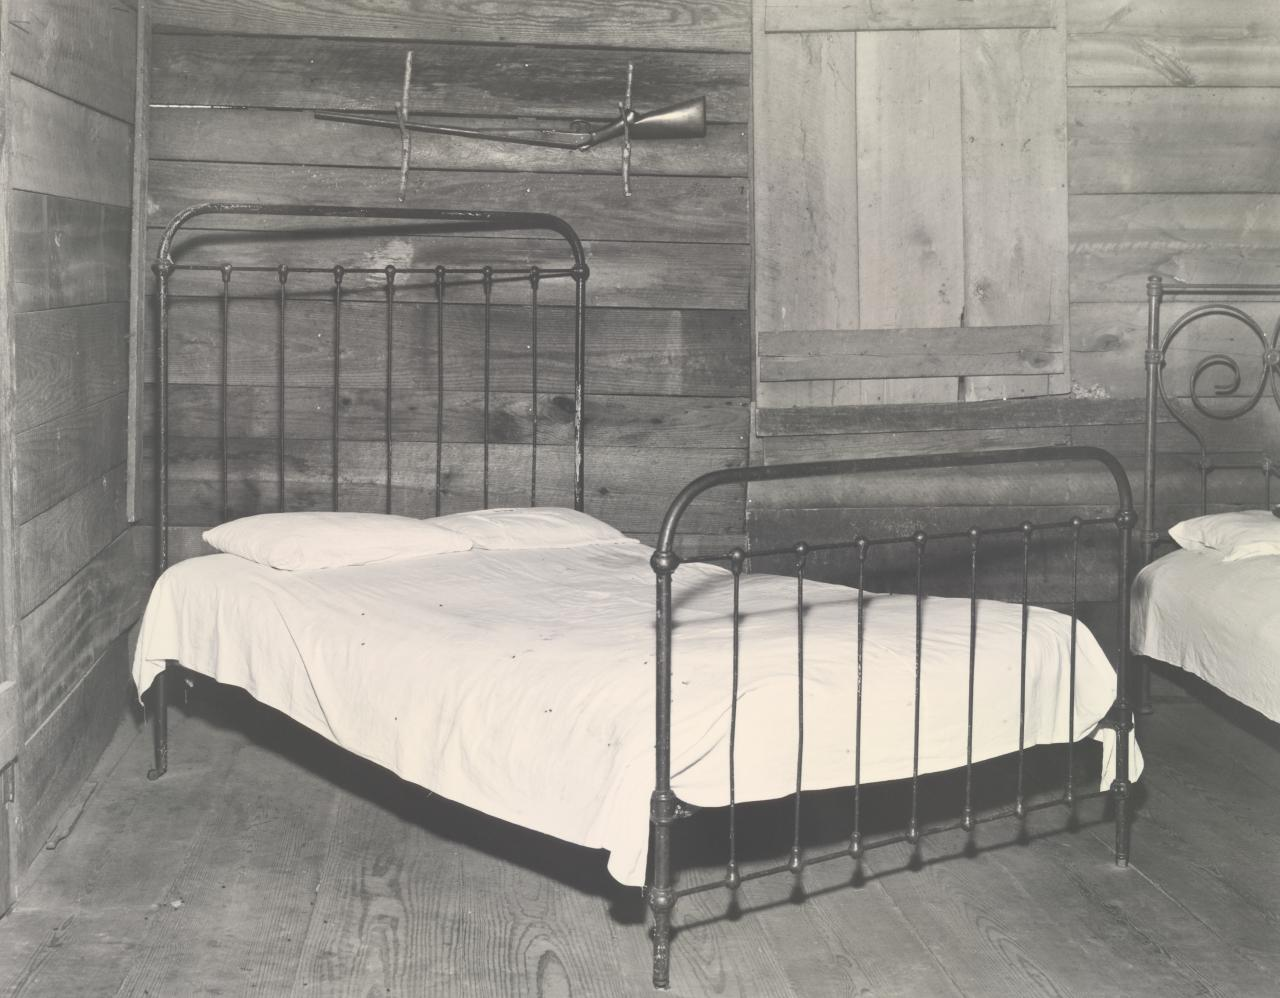 Floyd Burroughs' Bedroom, Hale County, Alabama